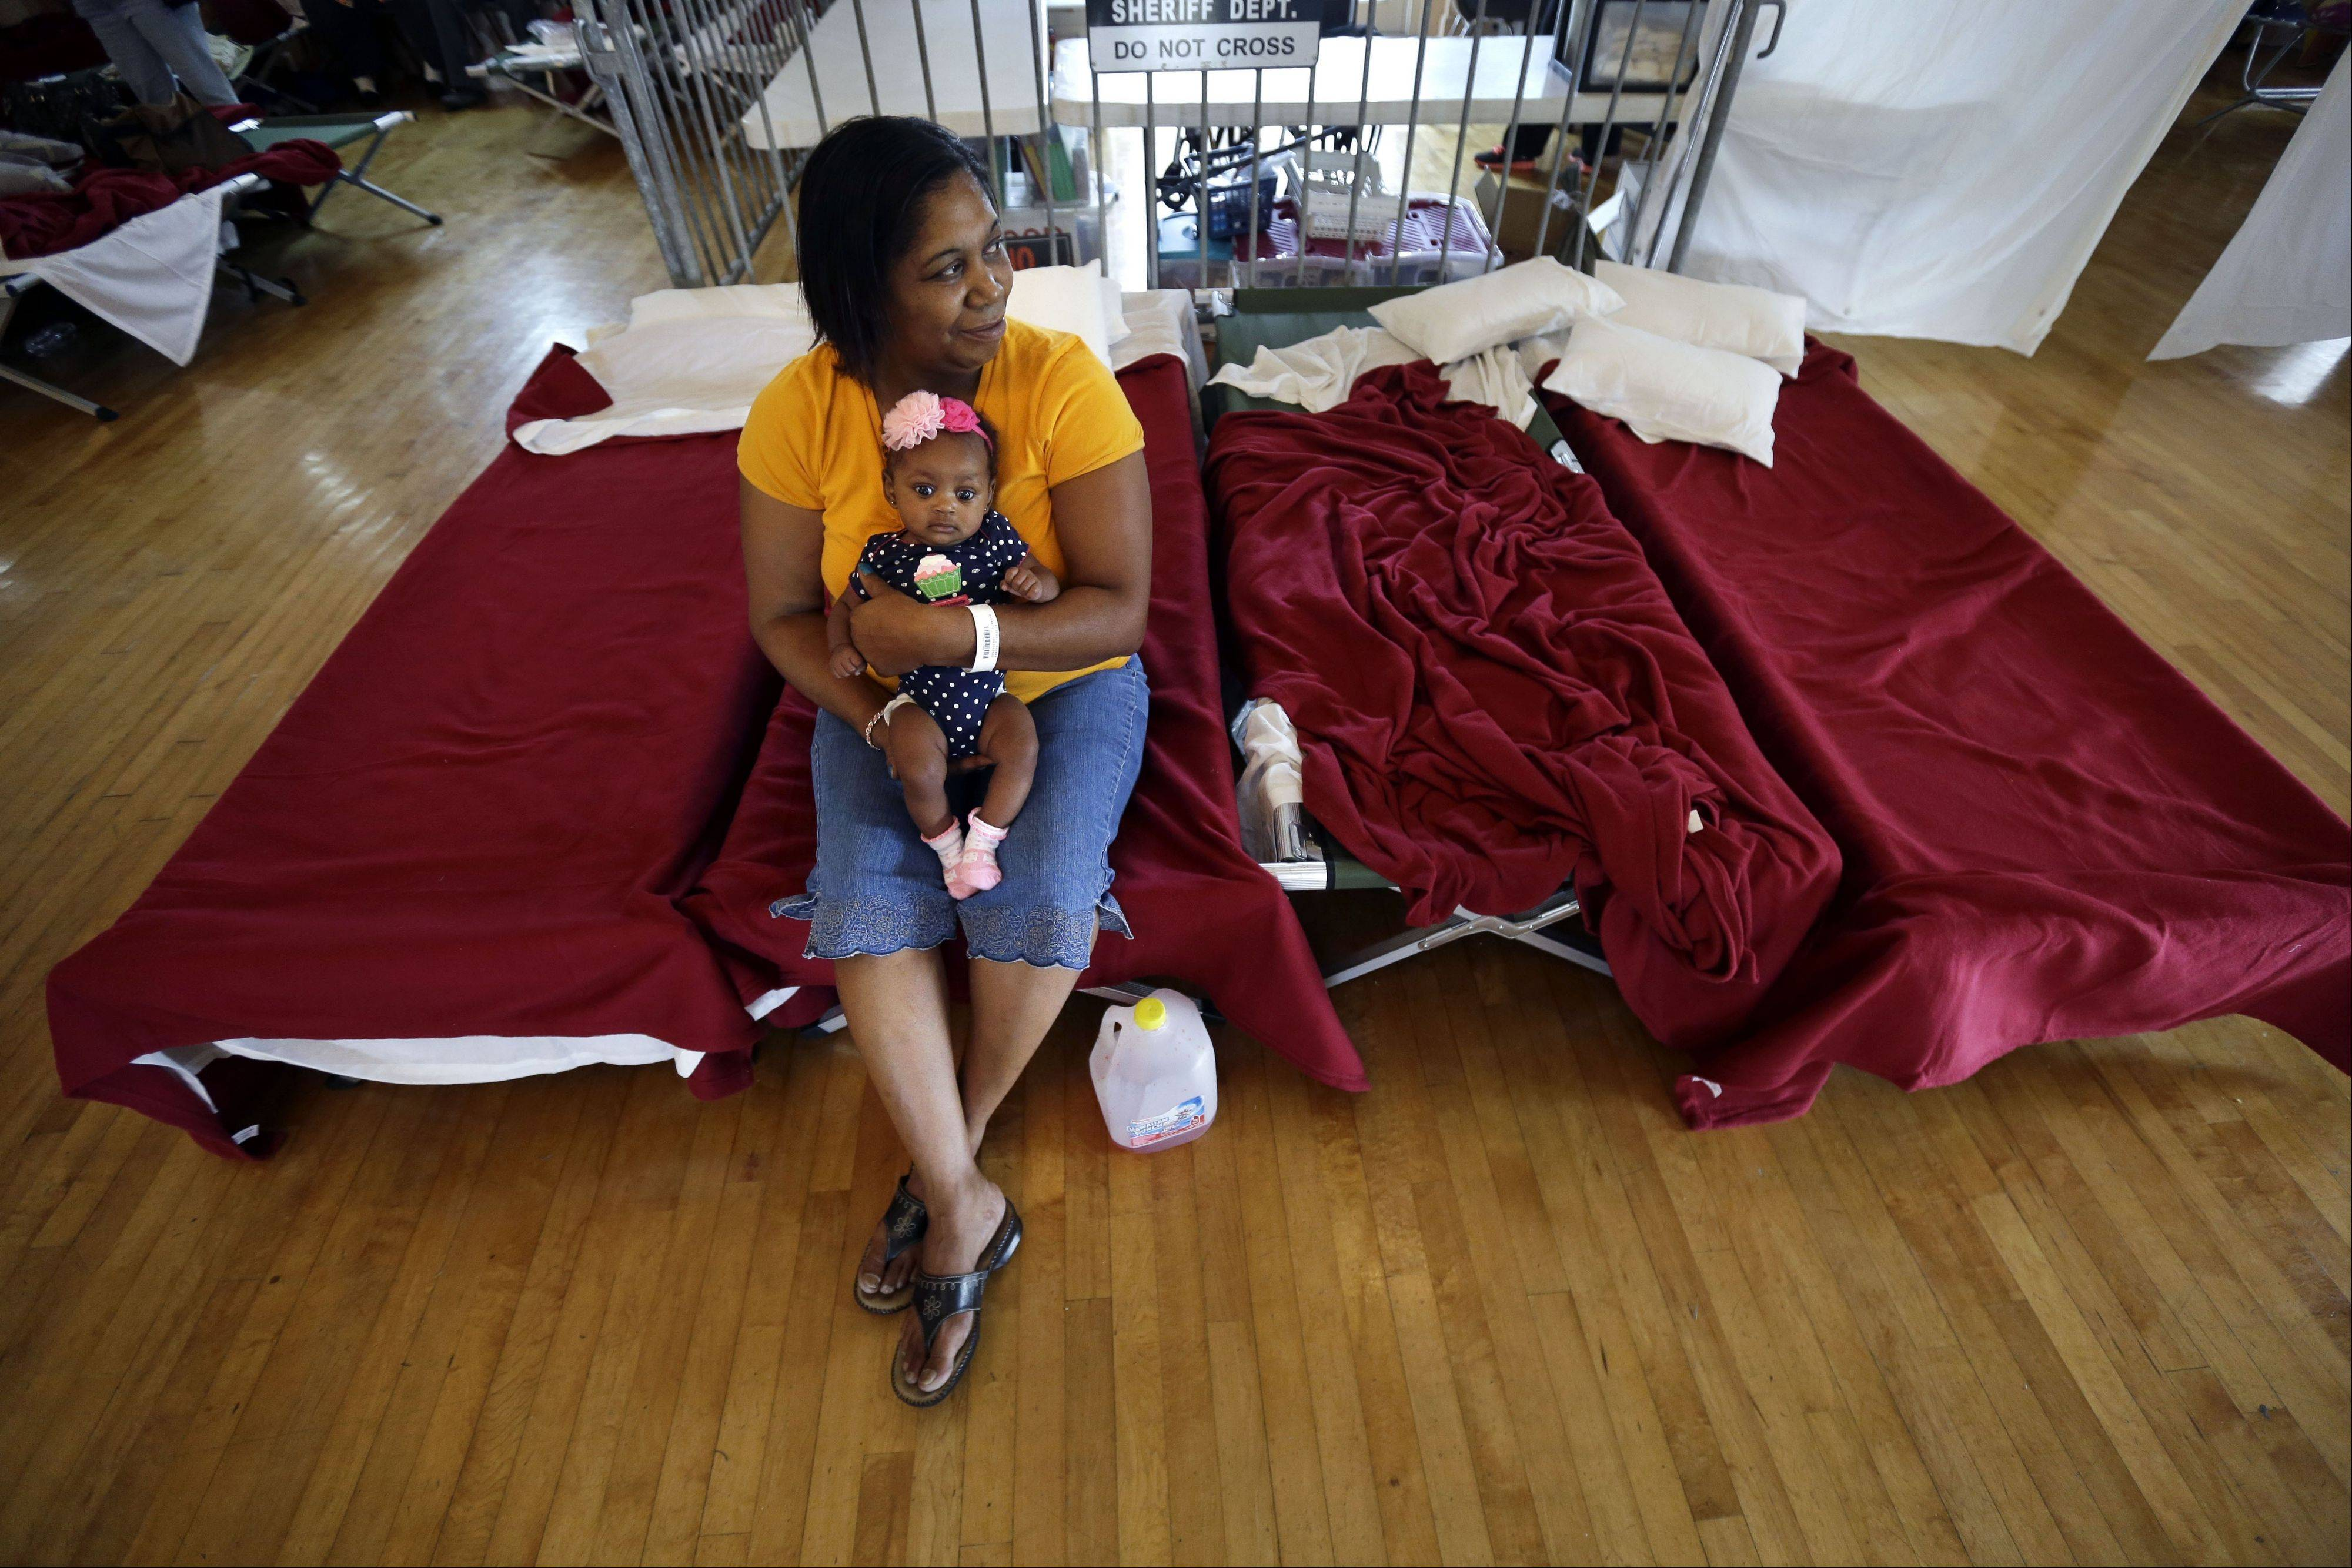 Rhonda Etienne of Davant, La., holds her niece Nevaeh Etienne, three months, in an evacuation shelter in Belle Chasse, La., in anticipation of Tropical Storm Karen, Saturday, Oct. 5. The East Bank of Plaquemines Parish has been under a mandatory evacuation, which has been downgraded to a voluntary evacuation.